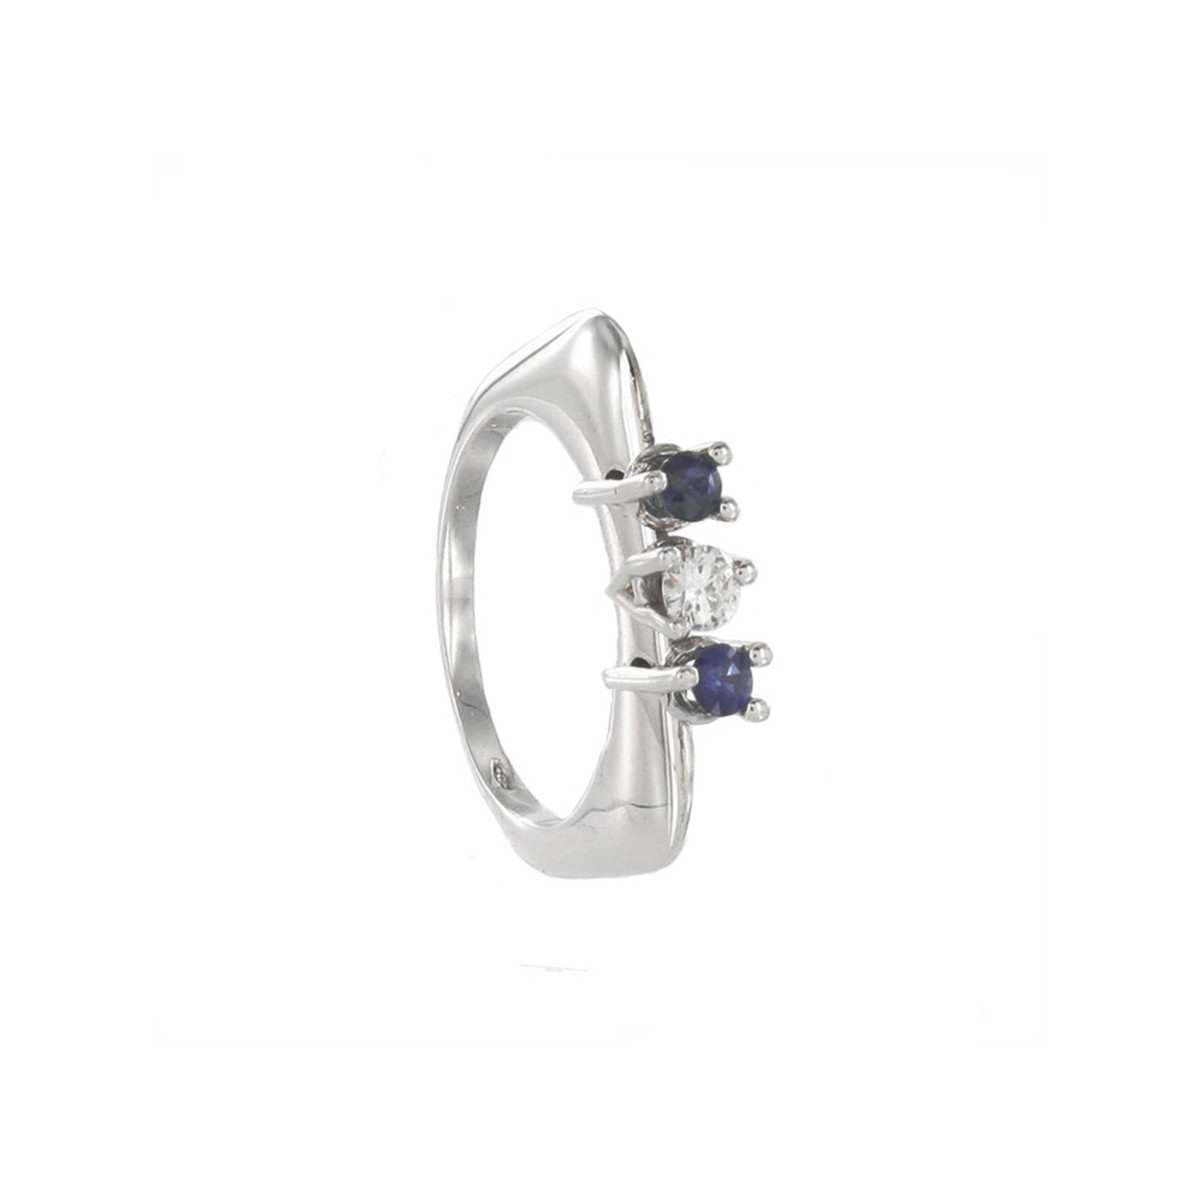 RING 2 SAPPHIRES AND DIAMOND WITH MOVEMENT